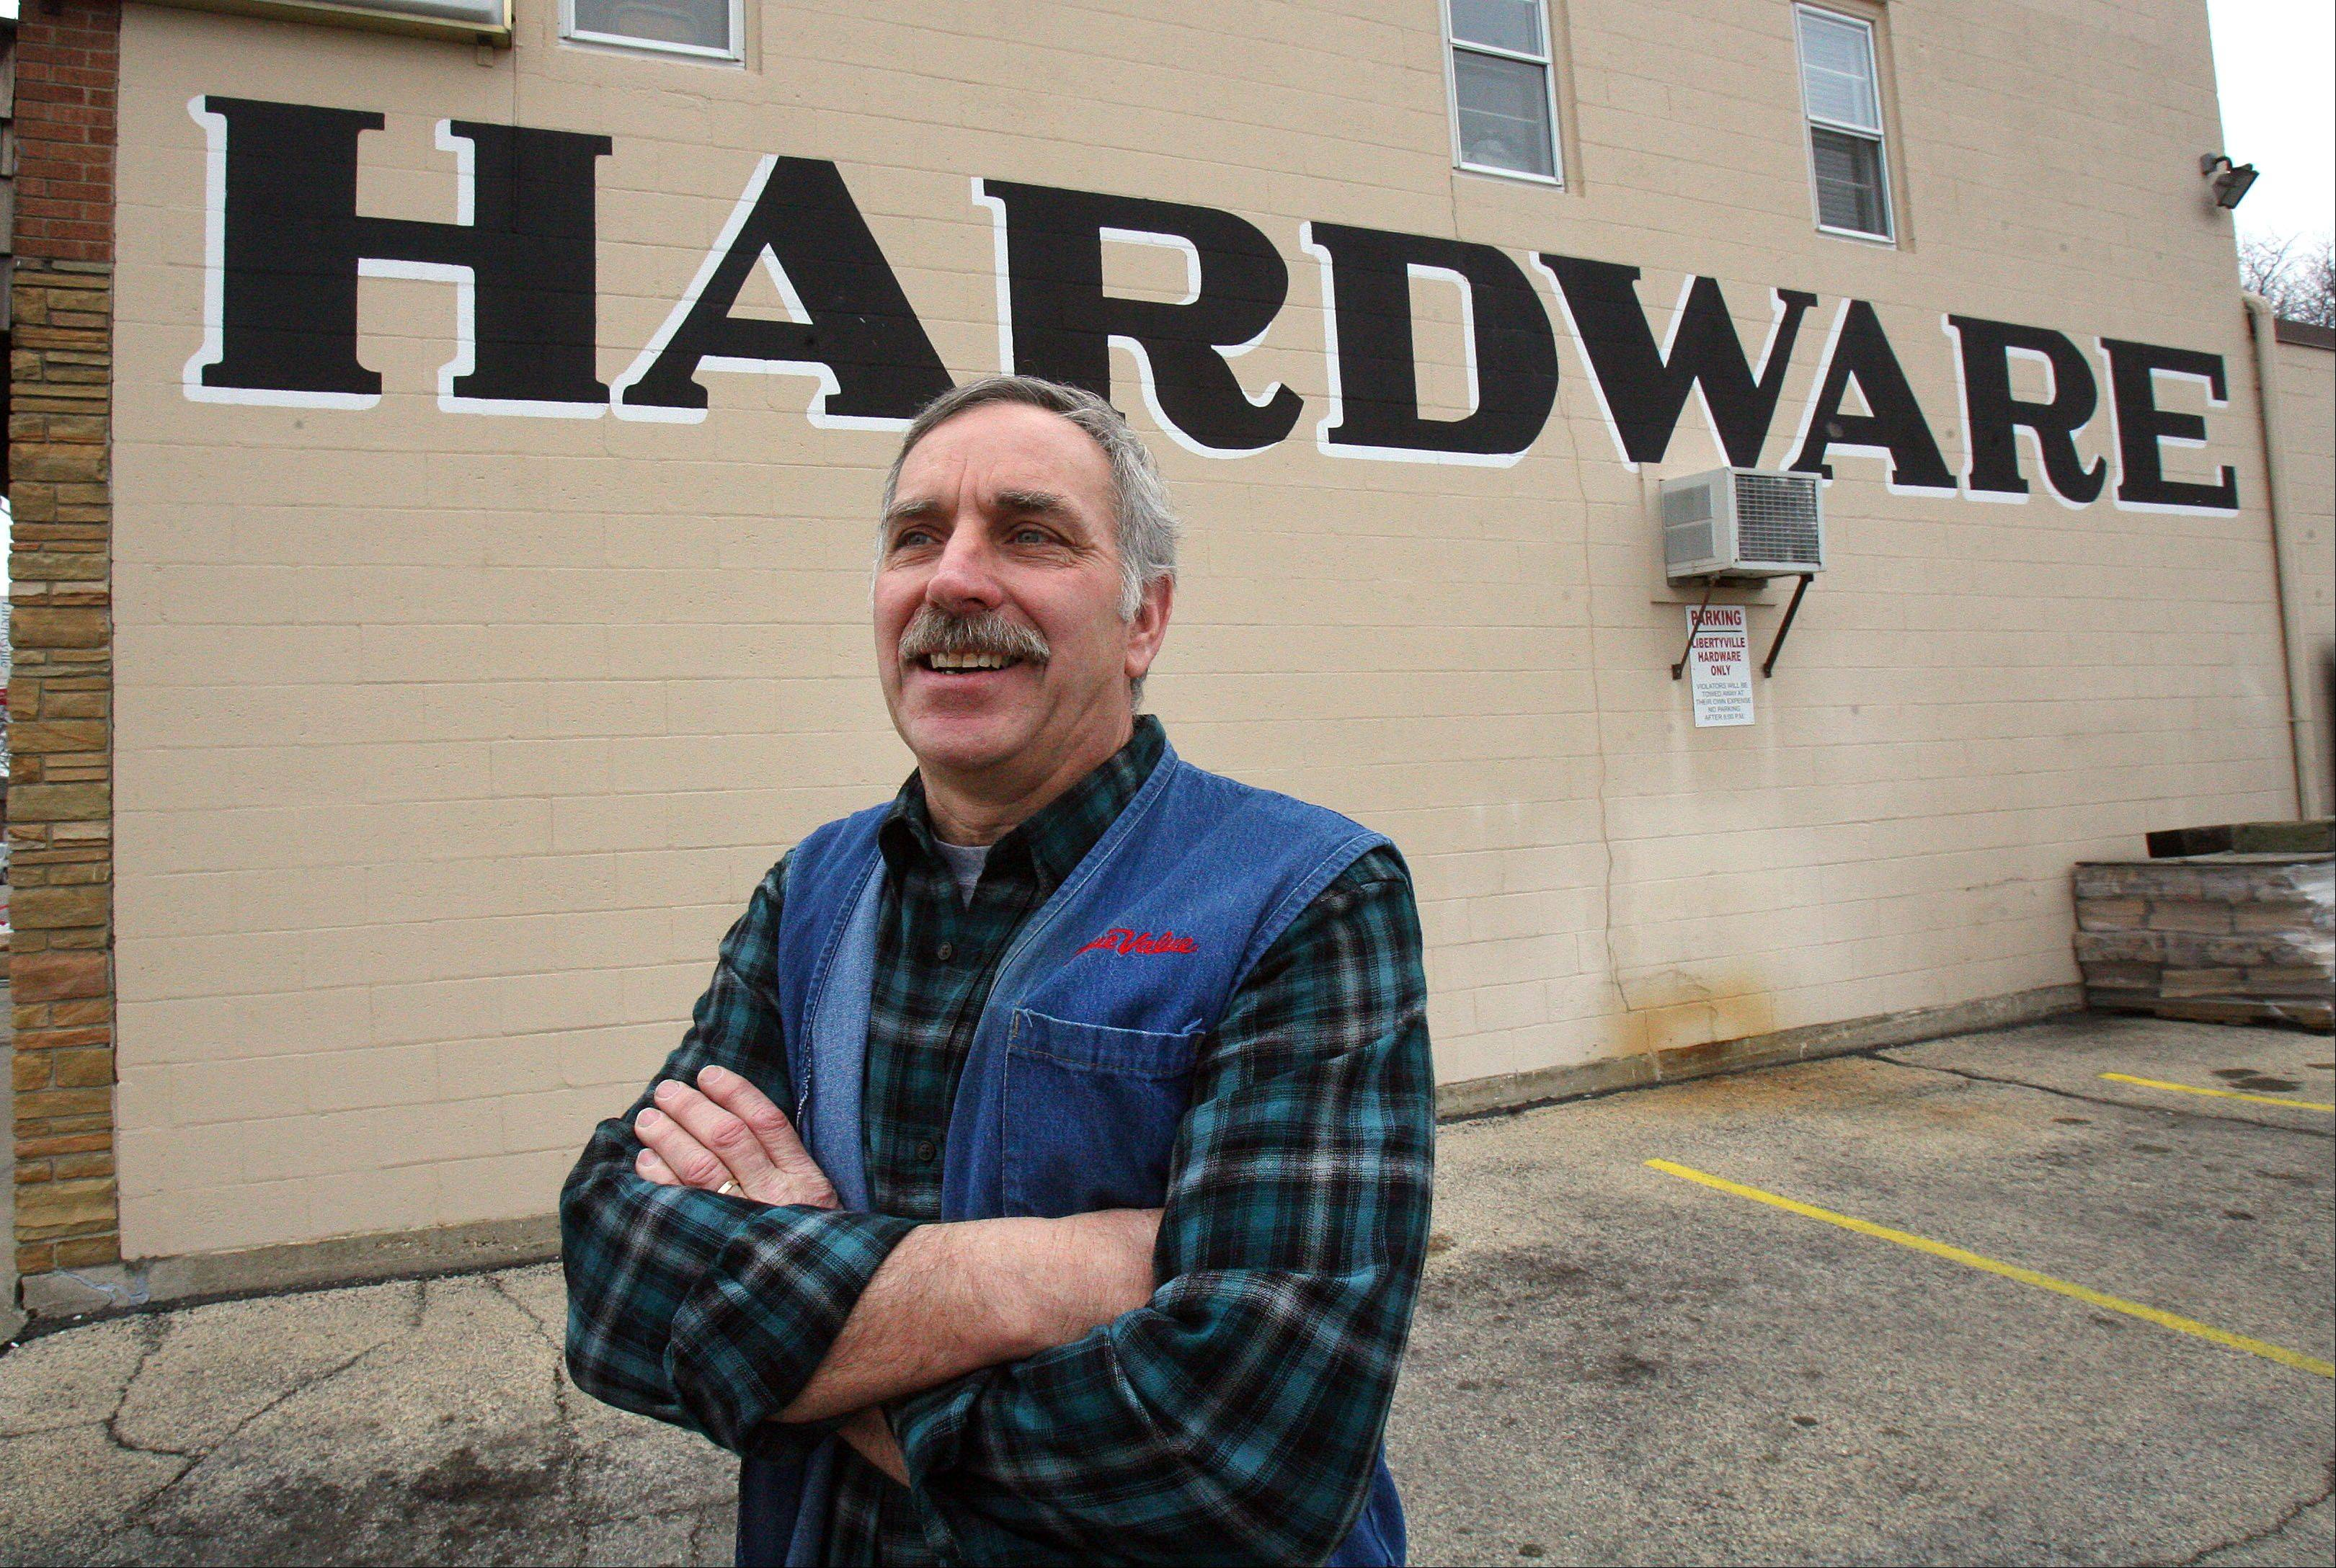 Libertyville hardware store owner says it's time to retire